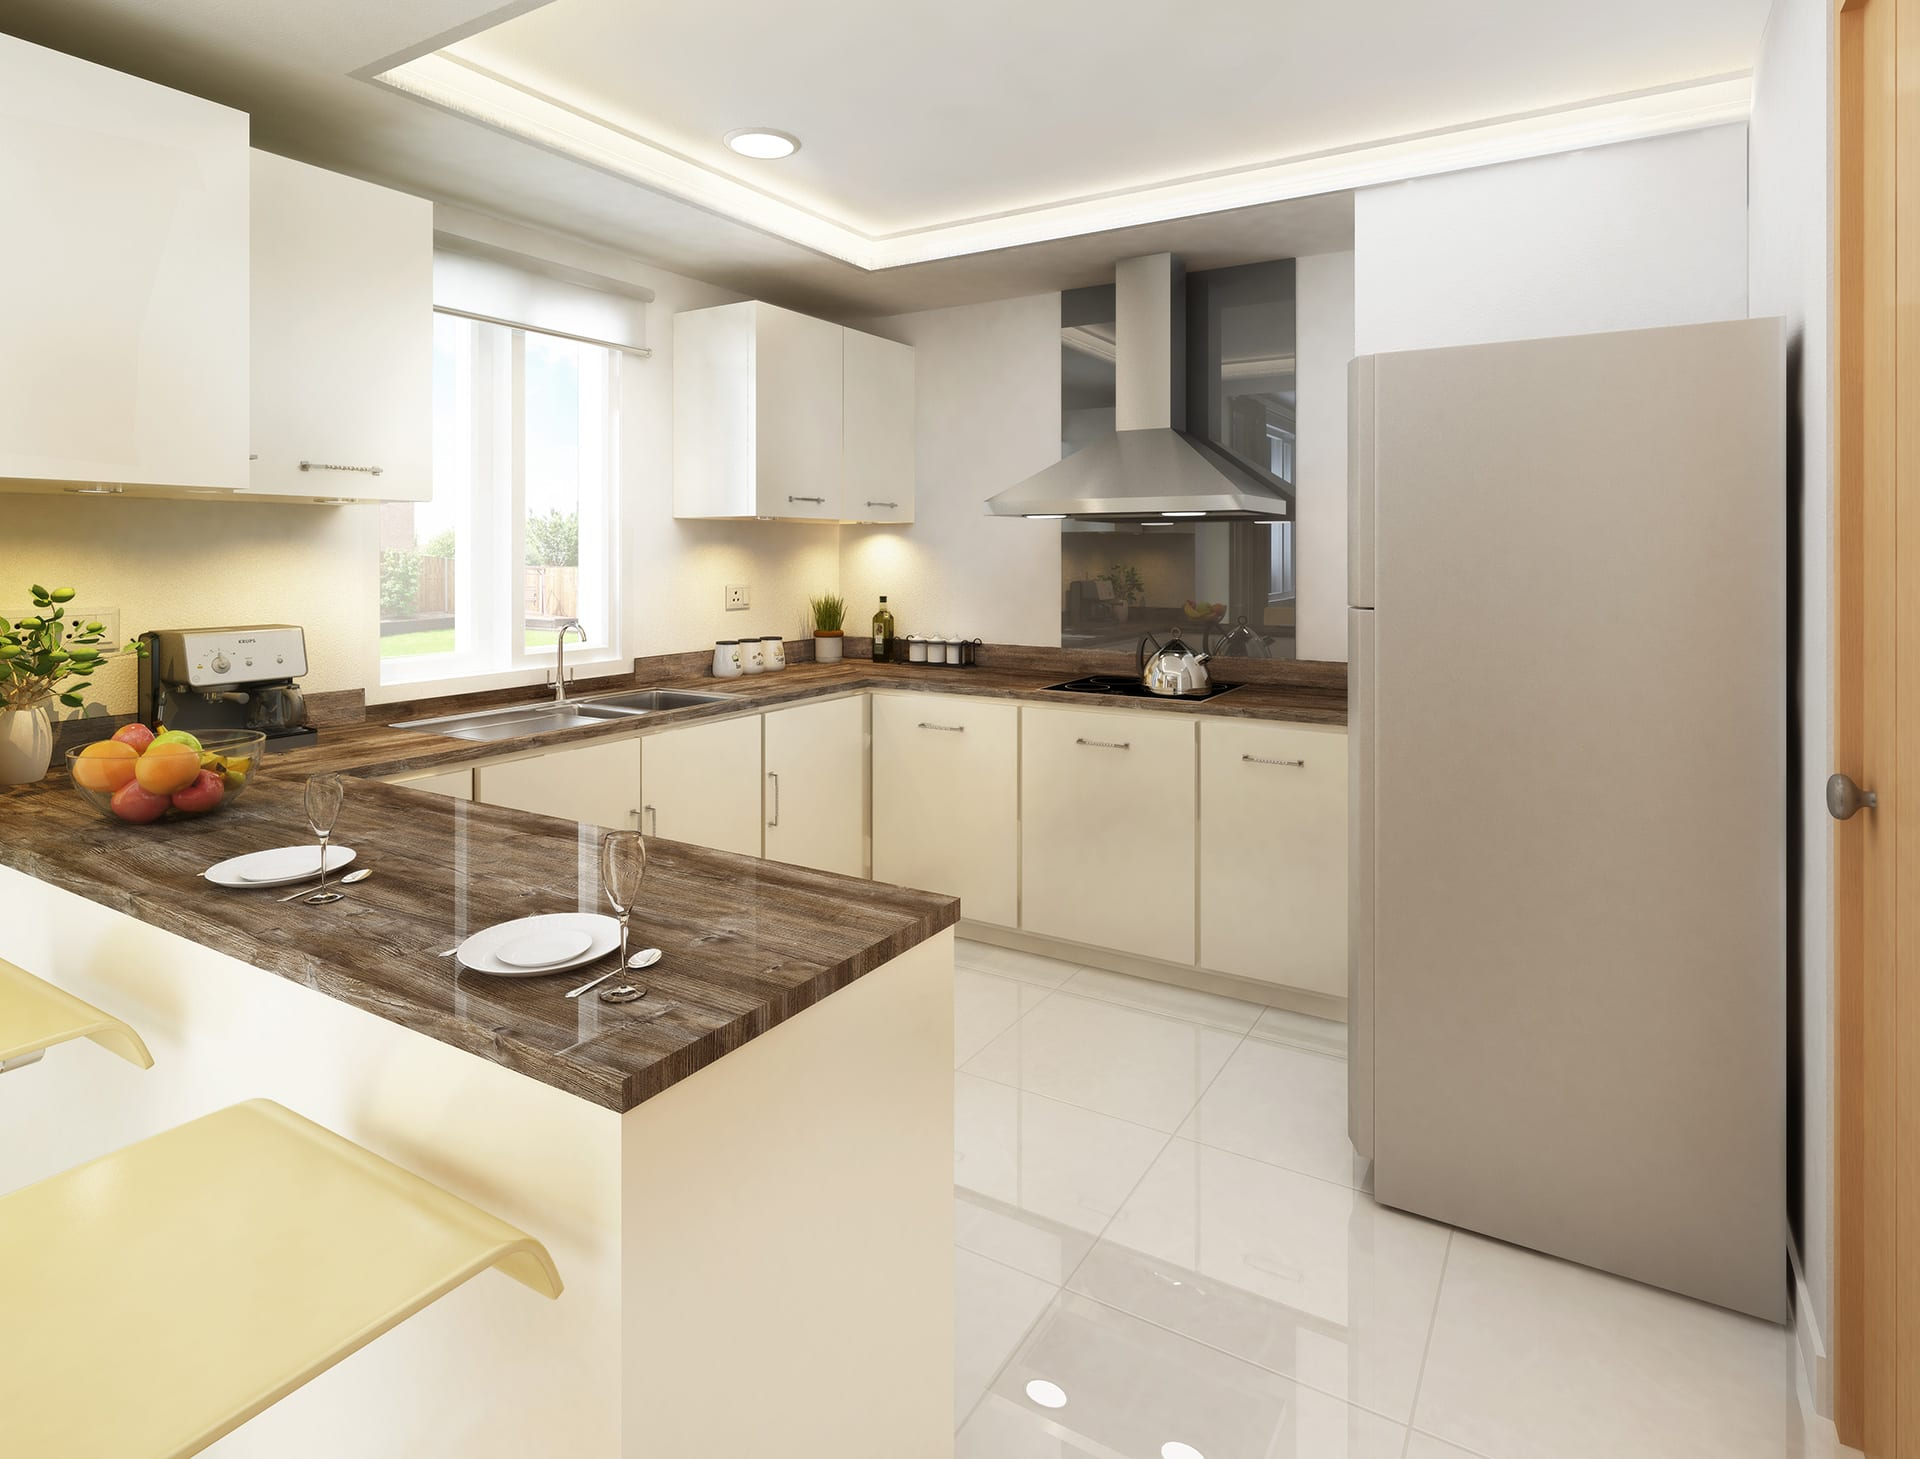 A bespoke wood worktop from our TopWood product range